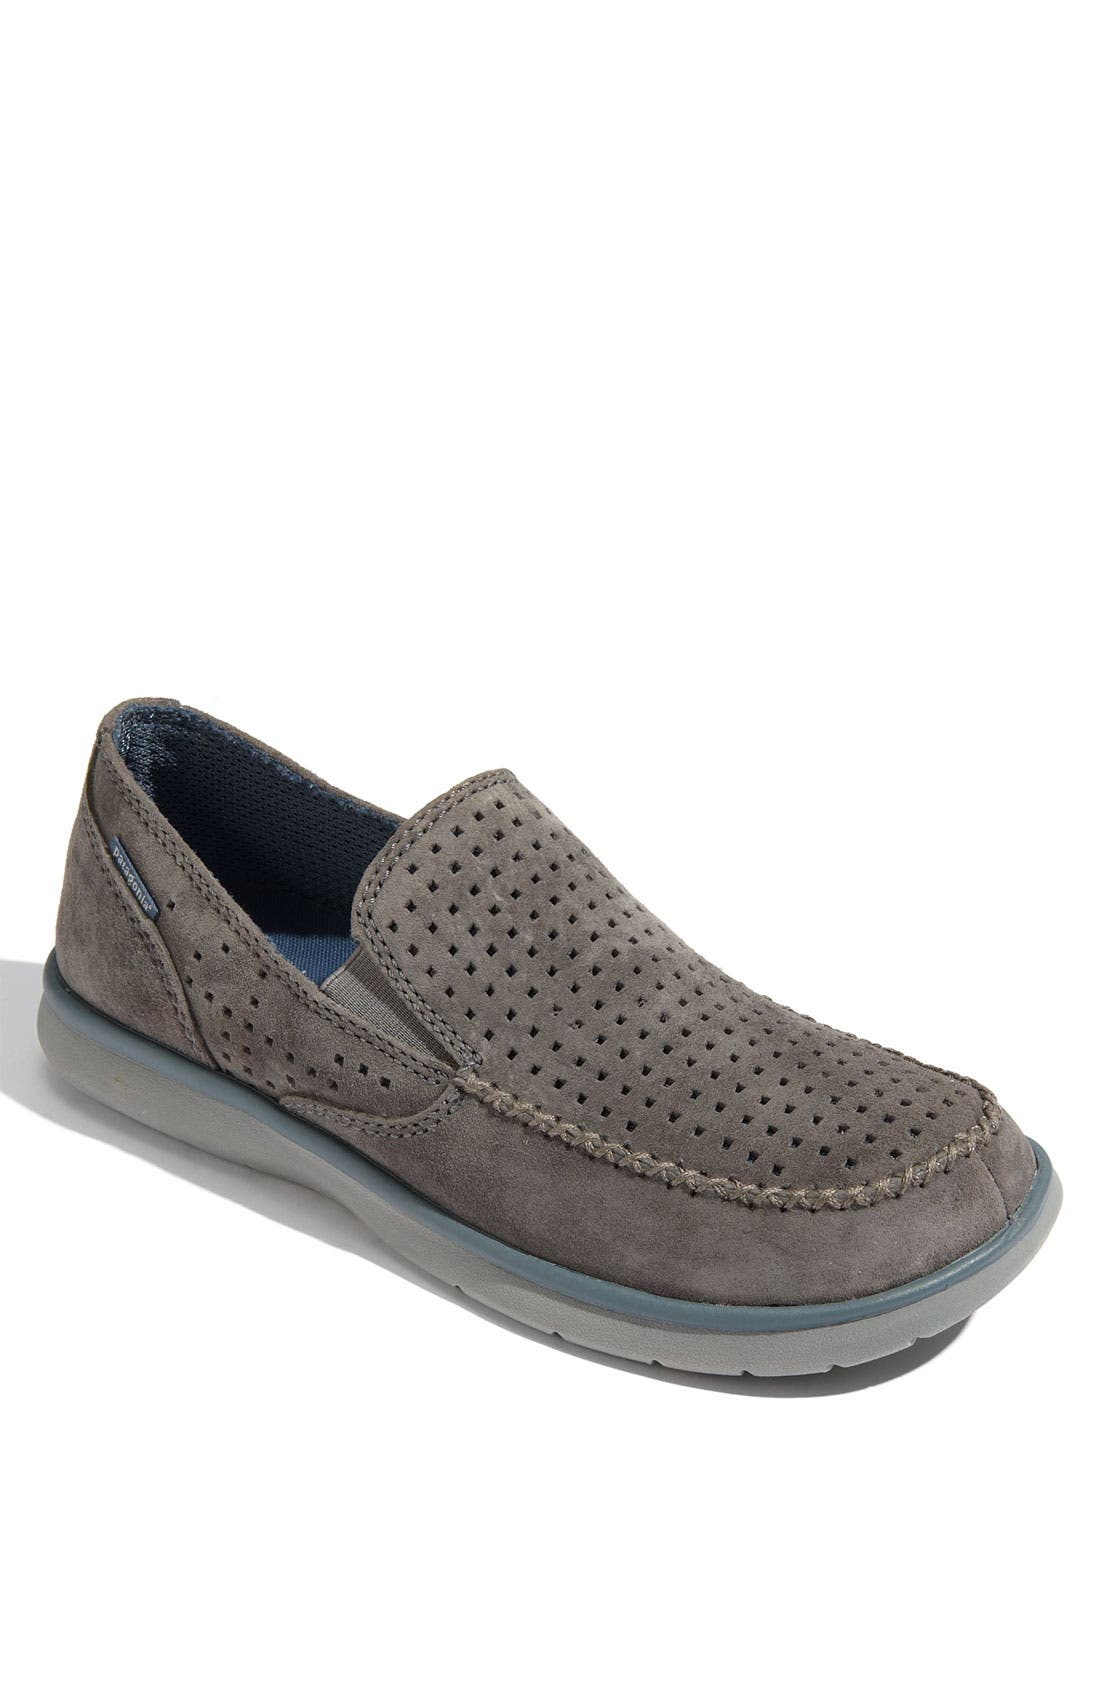 PATAGONIA 'Maui Air' Slip-On, Main, color, 020